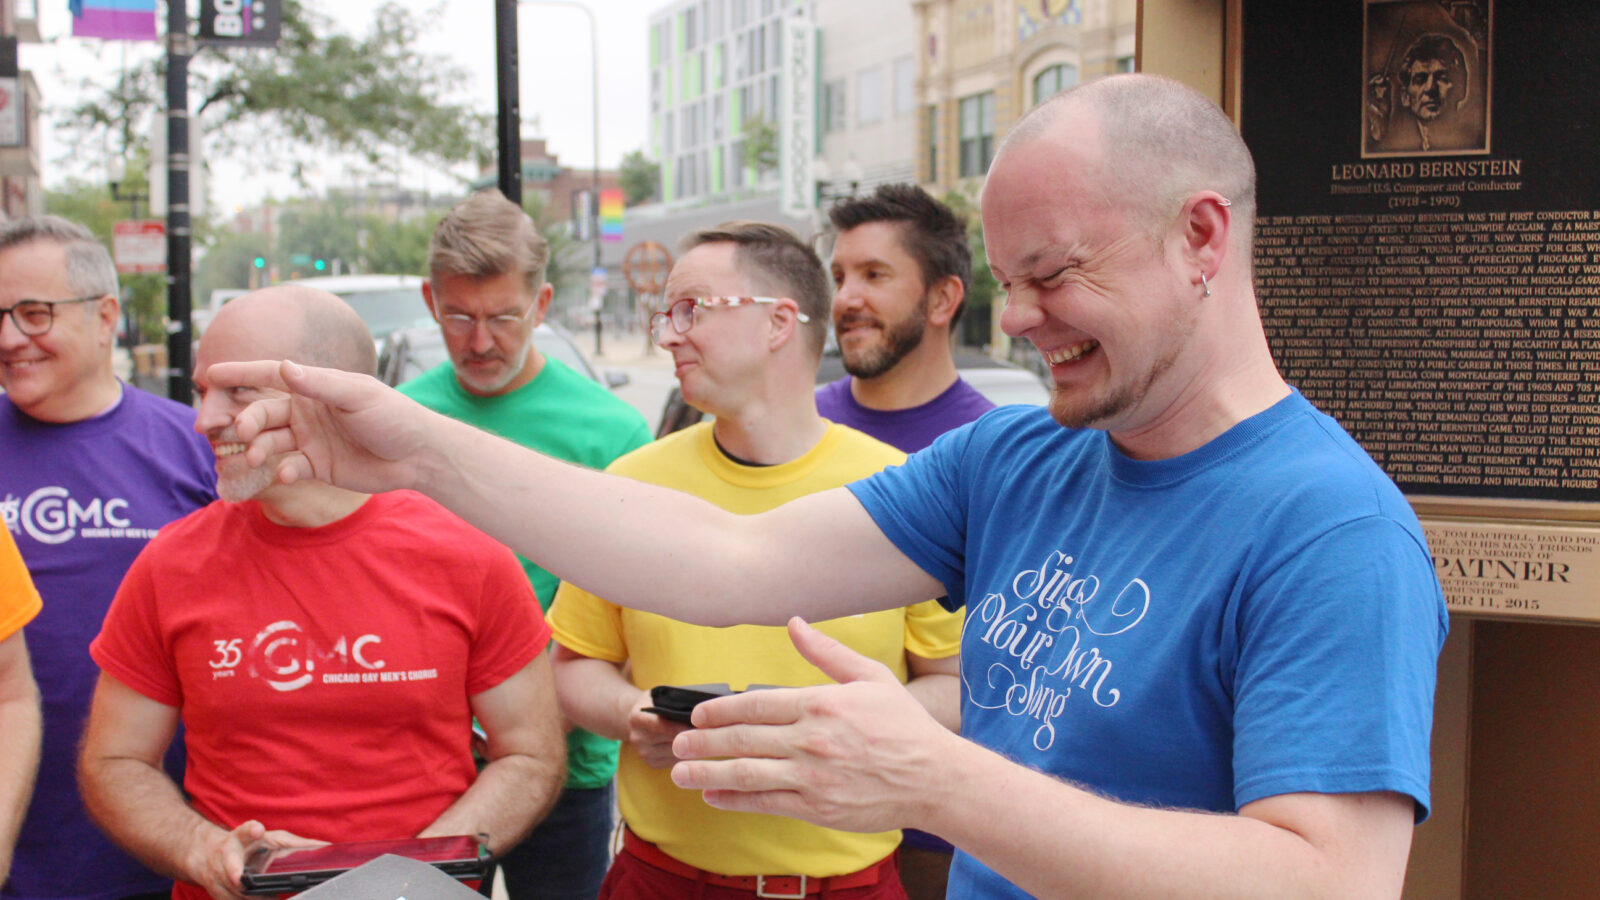 Members of the Chicago Gay Men's Chorus and Artistic Director Jimmy Morehead share a moment at the Leonard Bernstein memorial plaque on the Legacy Walk.